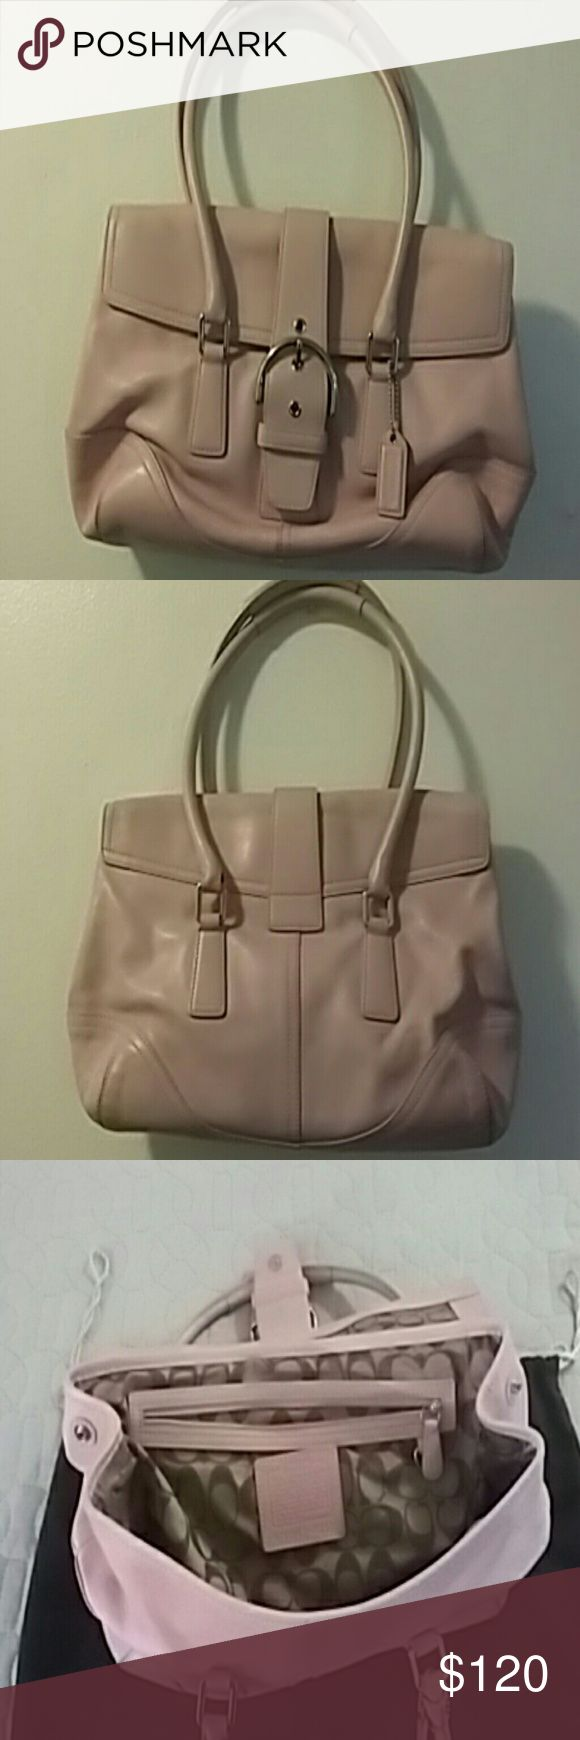 Bag/ Coach Hampton Soho/Satchel Shoulder bag Pink leather w/ beige fabric interior some scuffs on edges and front of bag. Good condition. Coach Bags Satchels